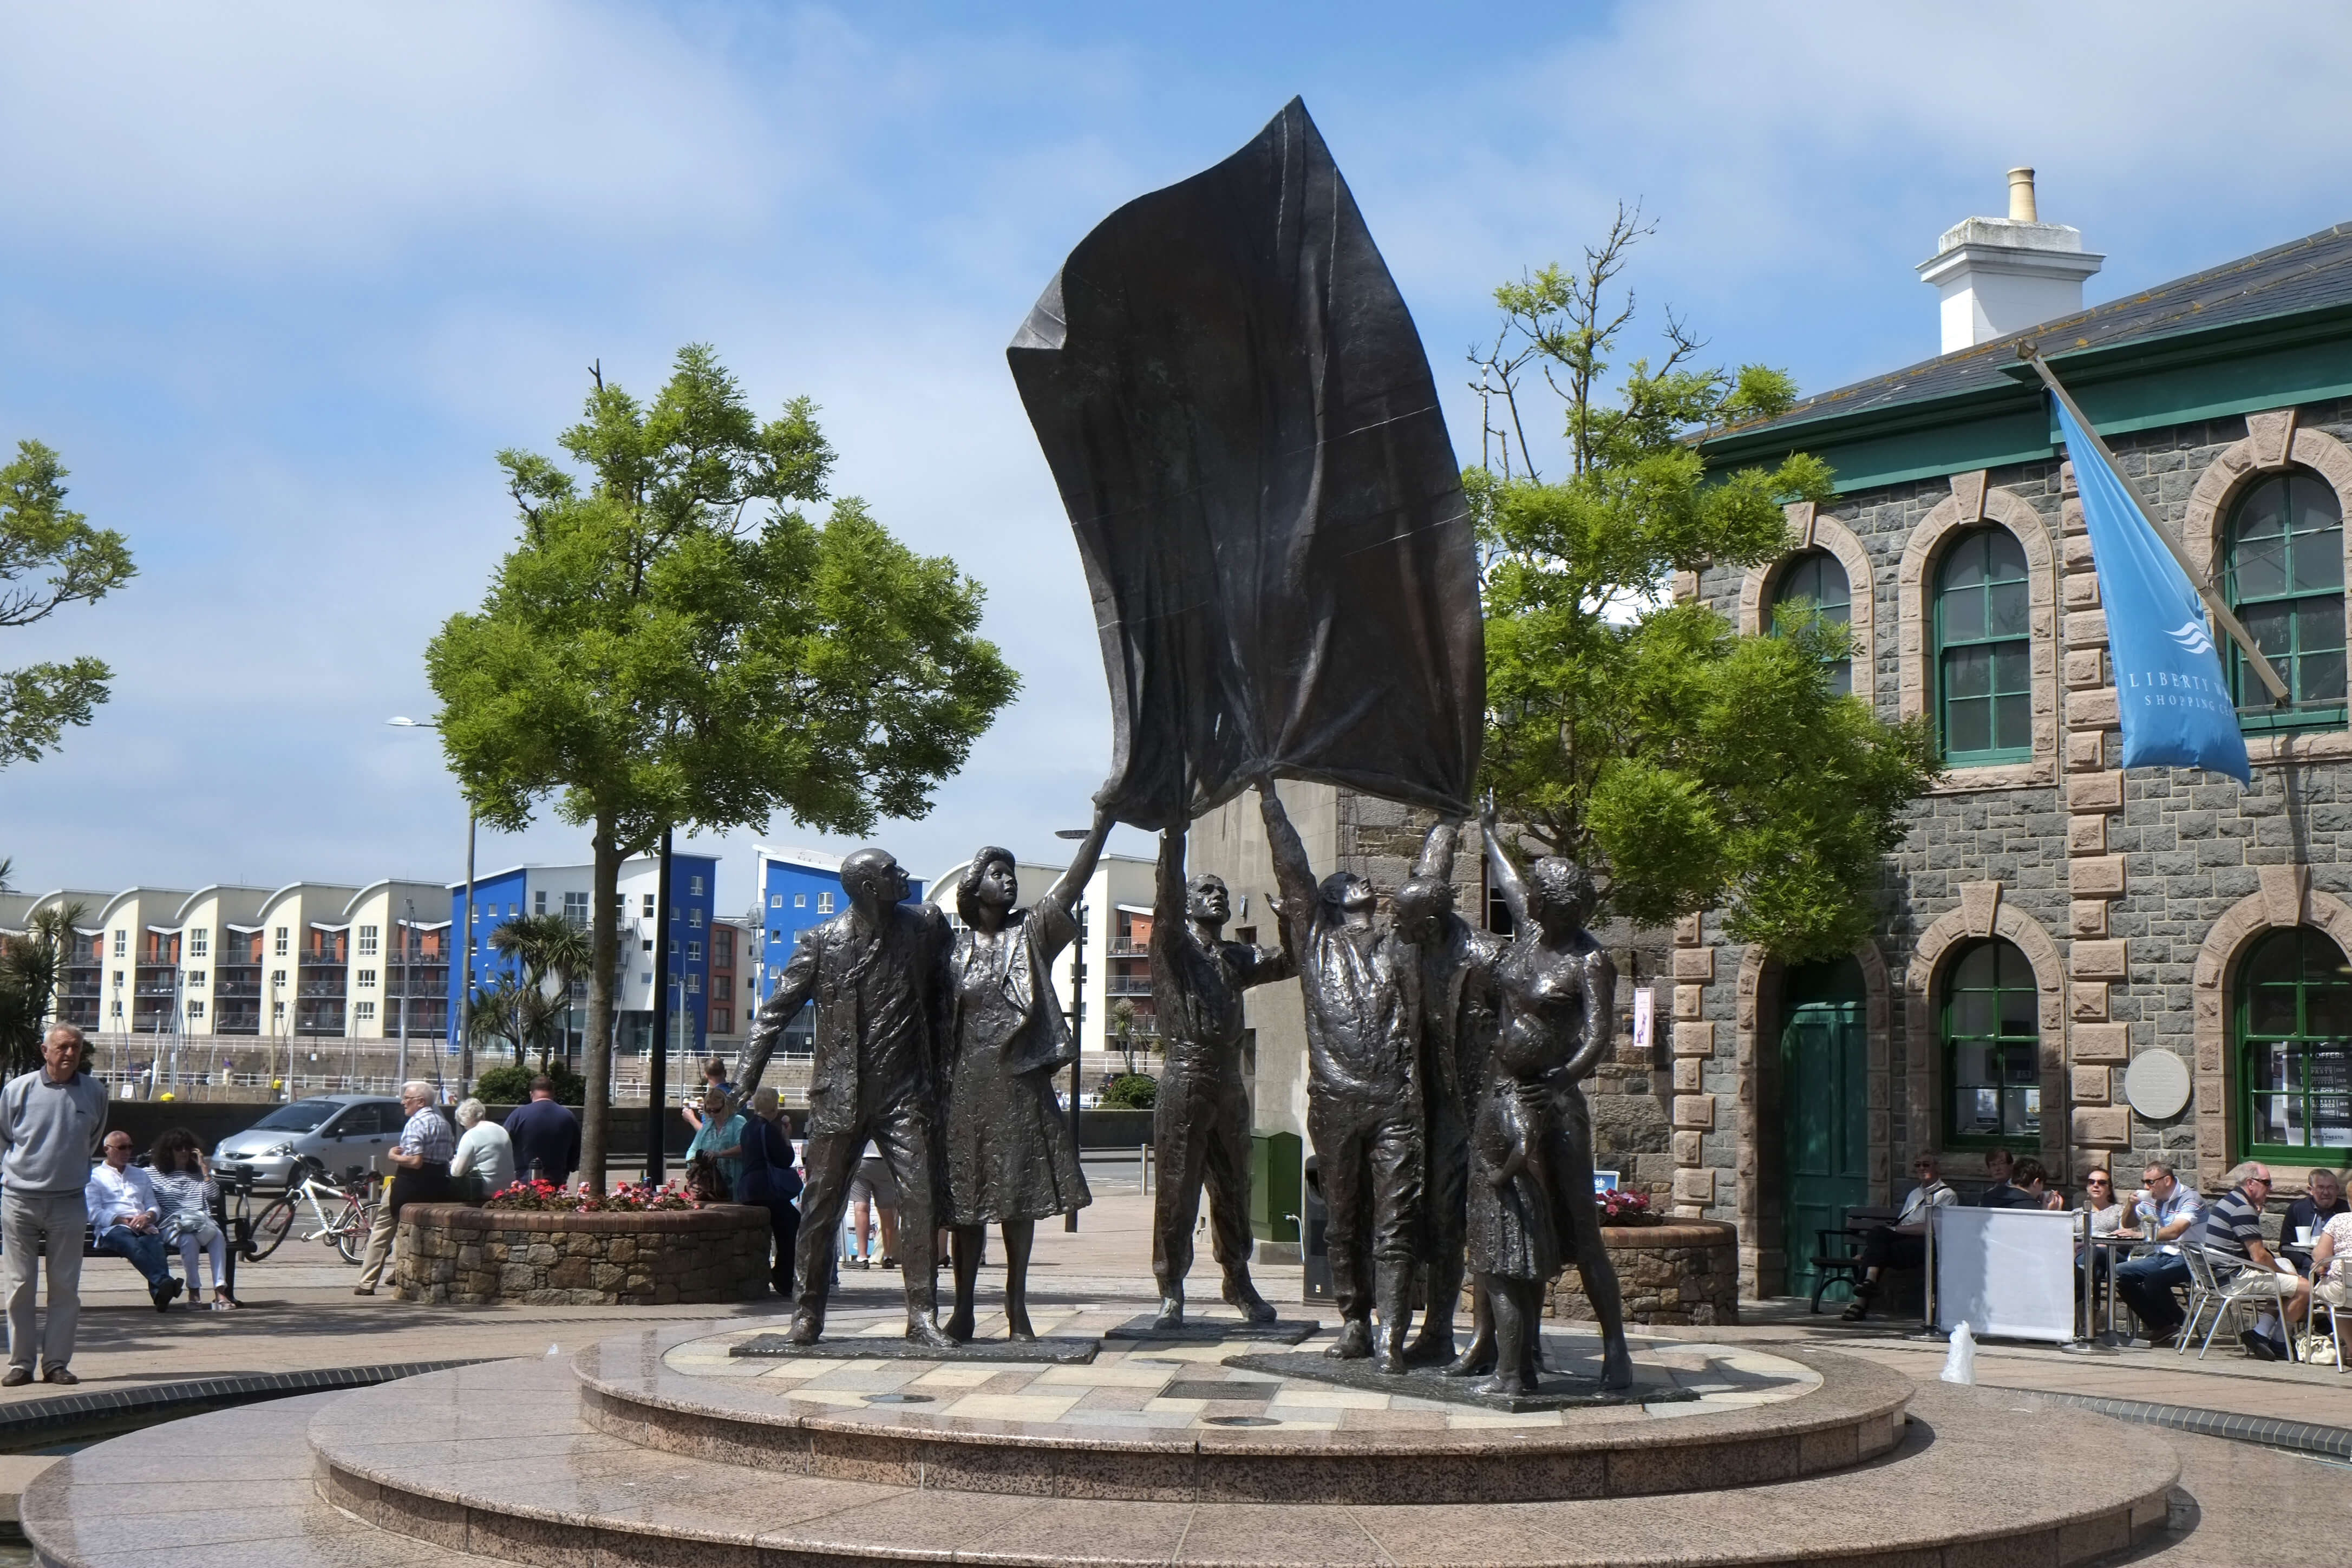 Sculpture in Liberation Square celebrating the end of the Nazi occupation of Jersey in 1945